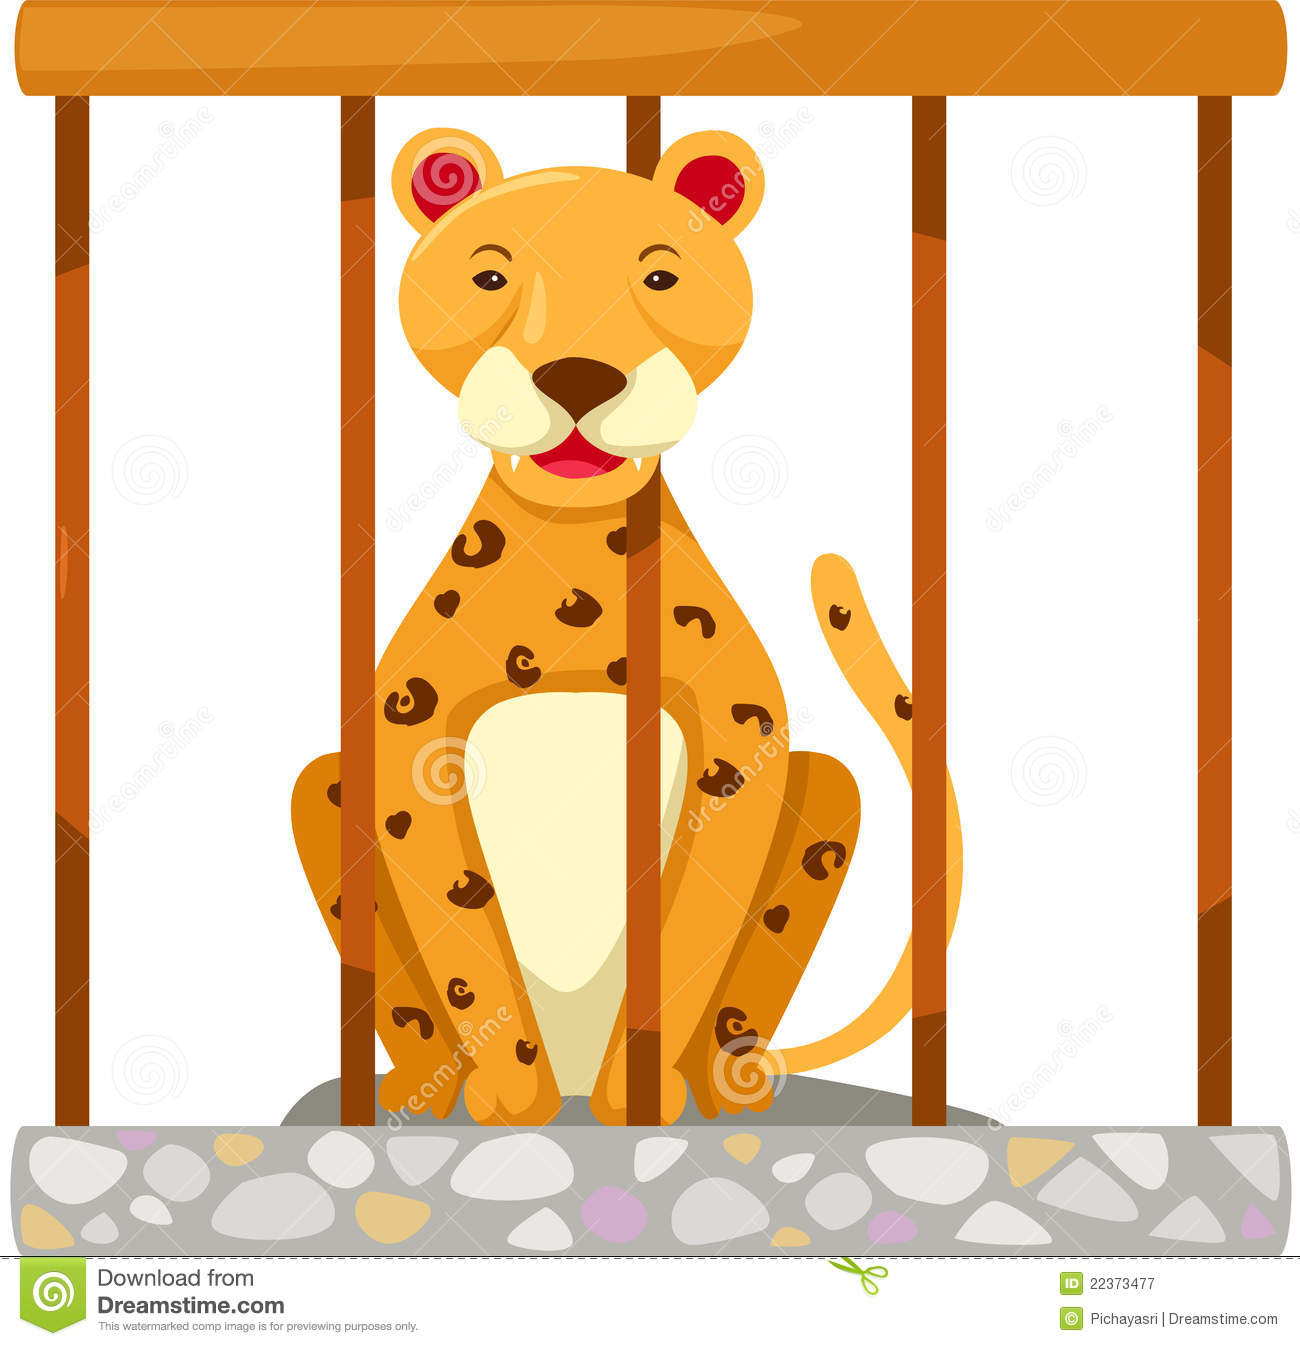 Tiger in cage royalty free stock photography image 22373477 - Tiger in cage images ...